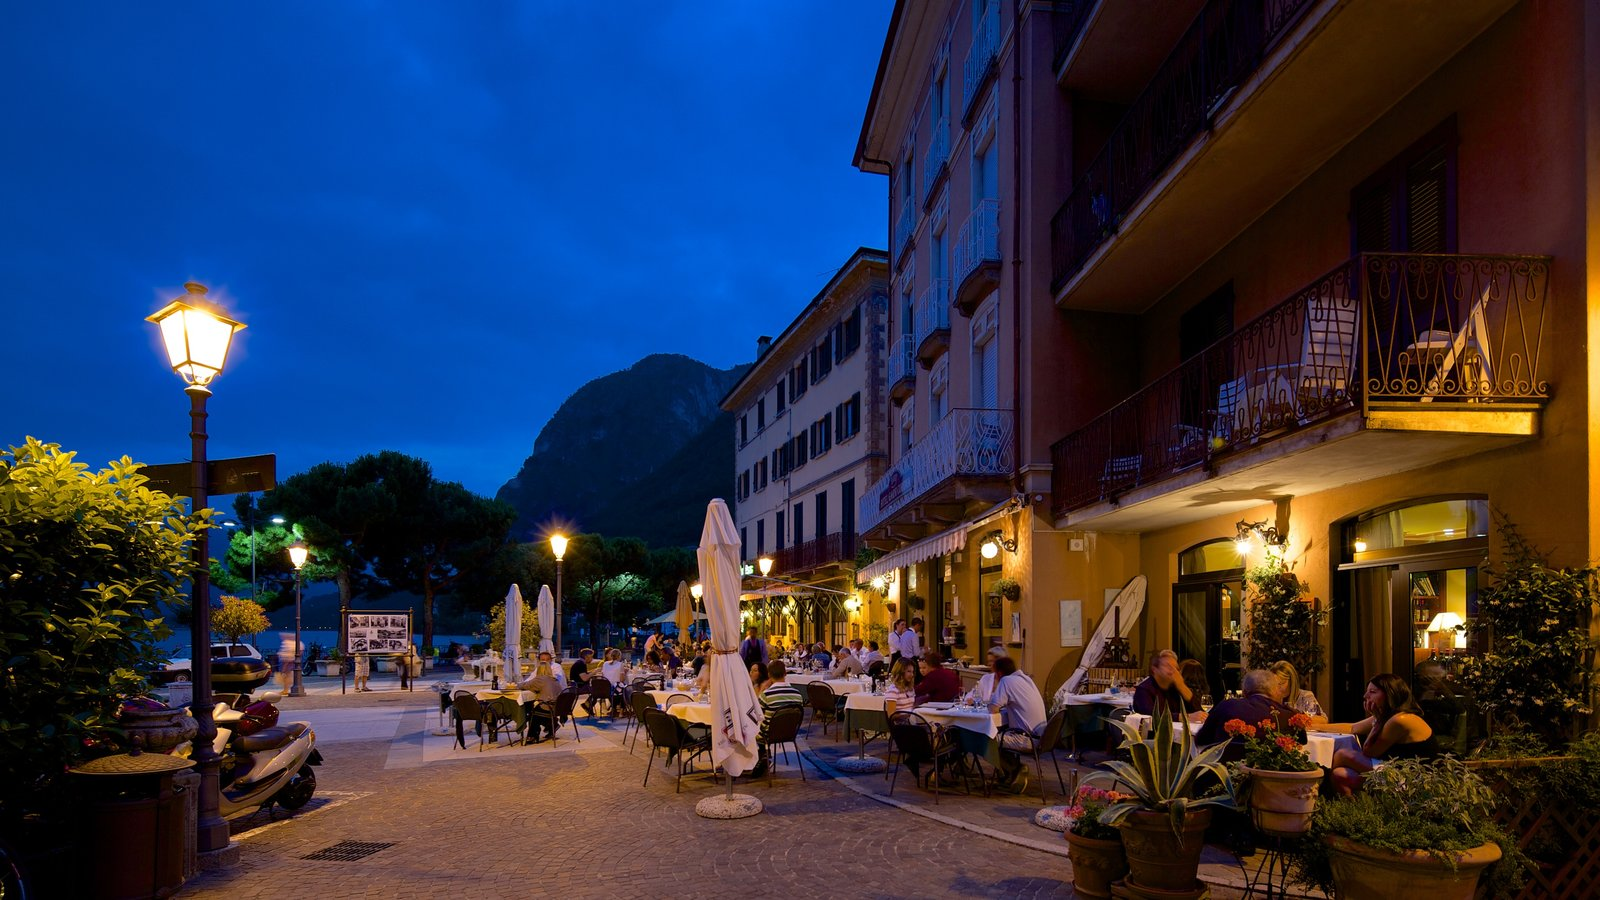 Menaggio showing nightlife, outdoor eating and dining out